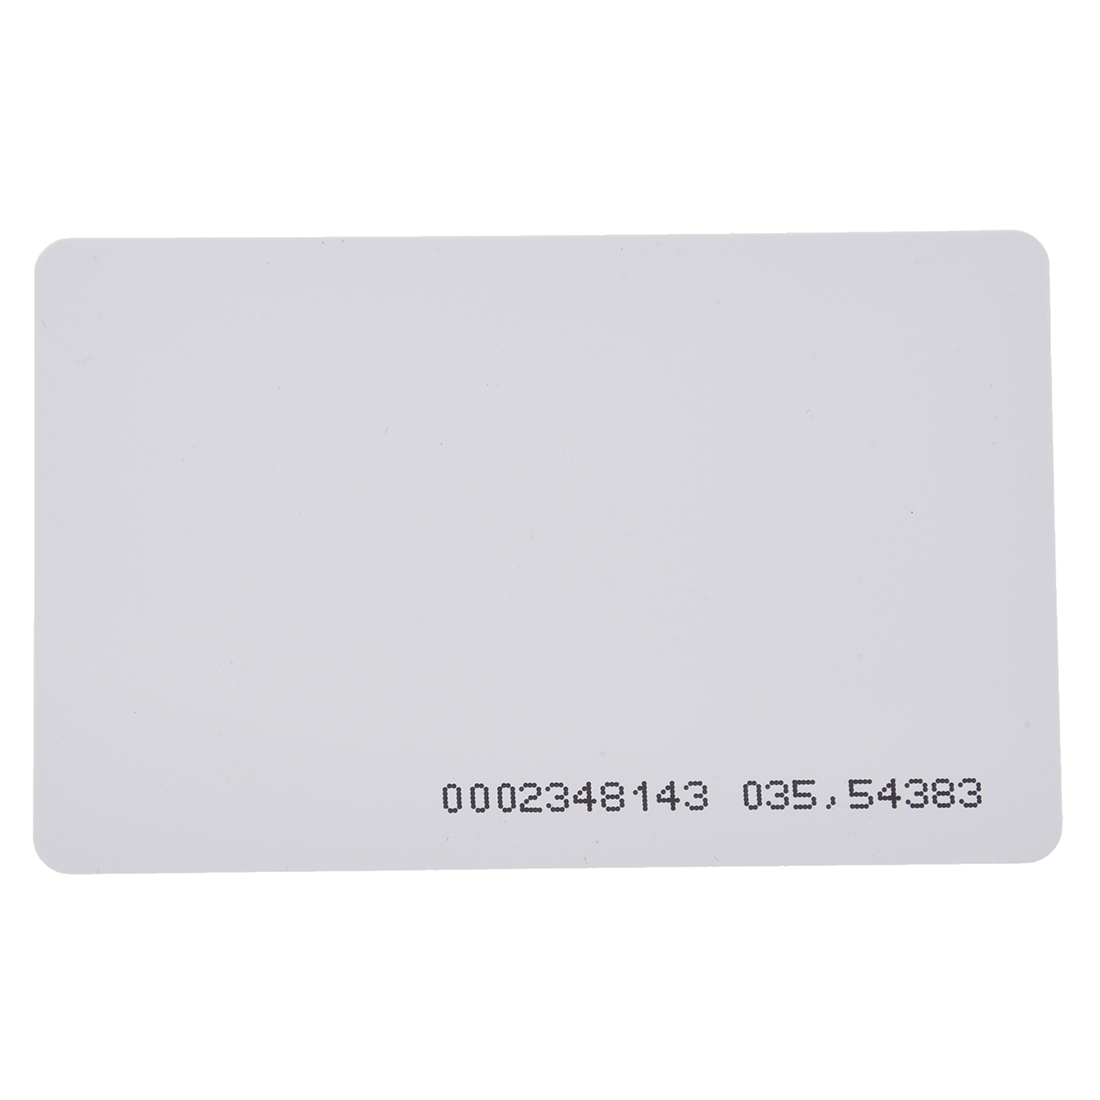 125Khz Door Entry Access Proximity RFID Card Wht 10 Pcs